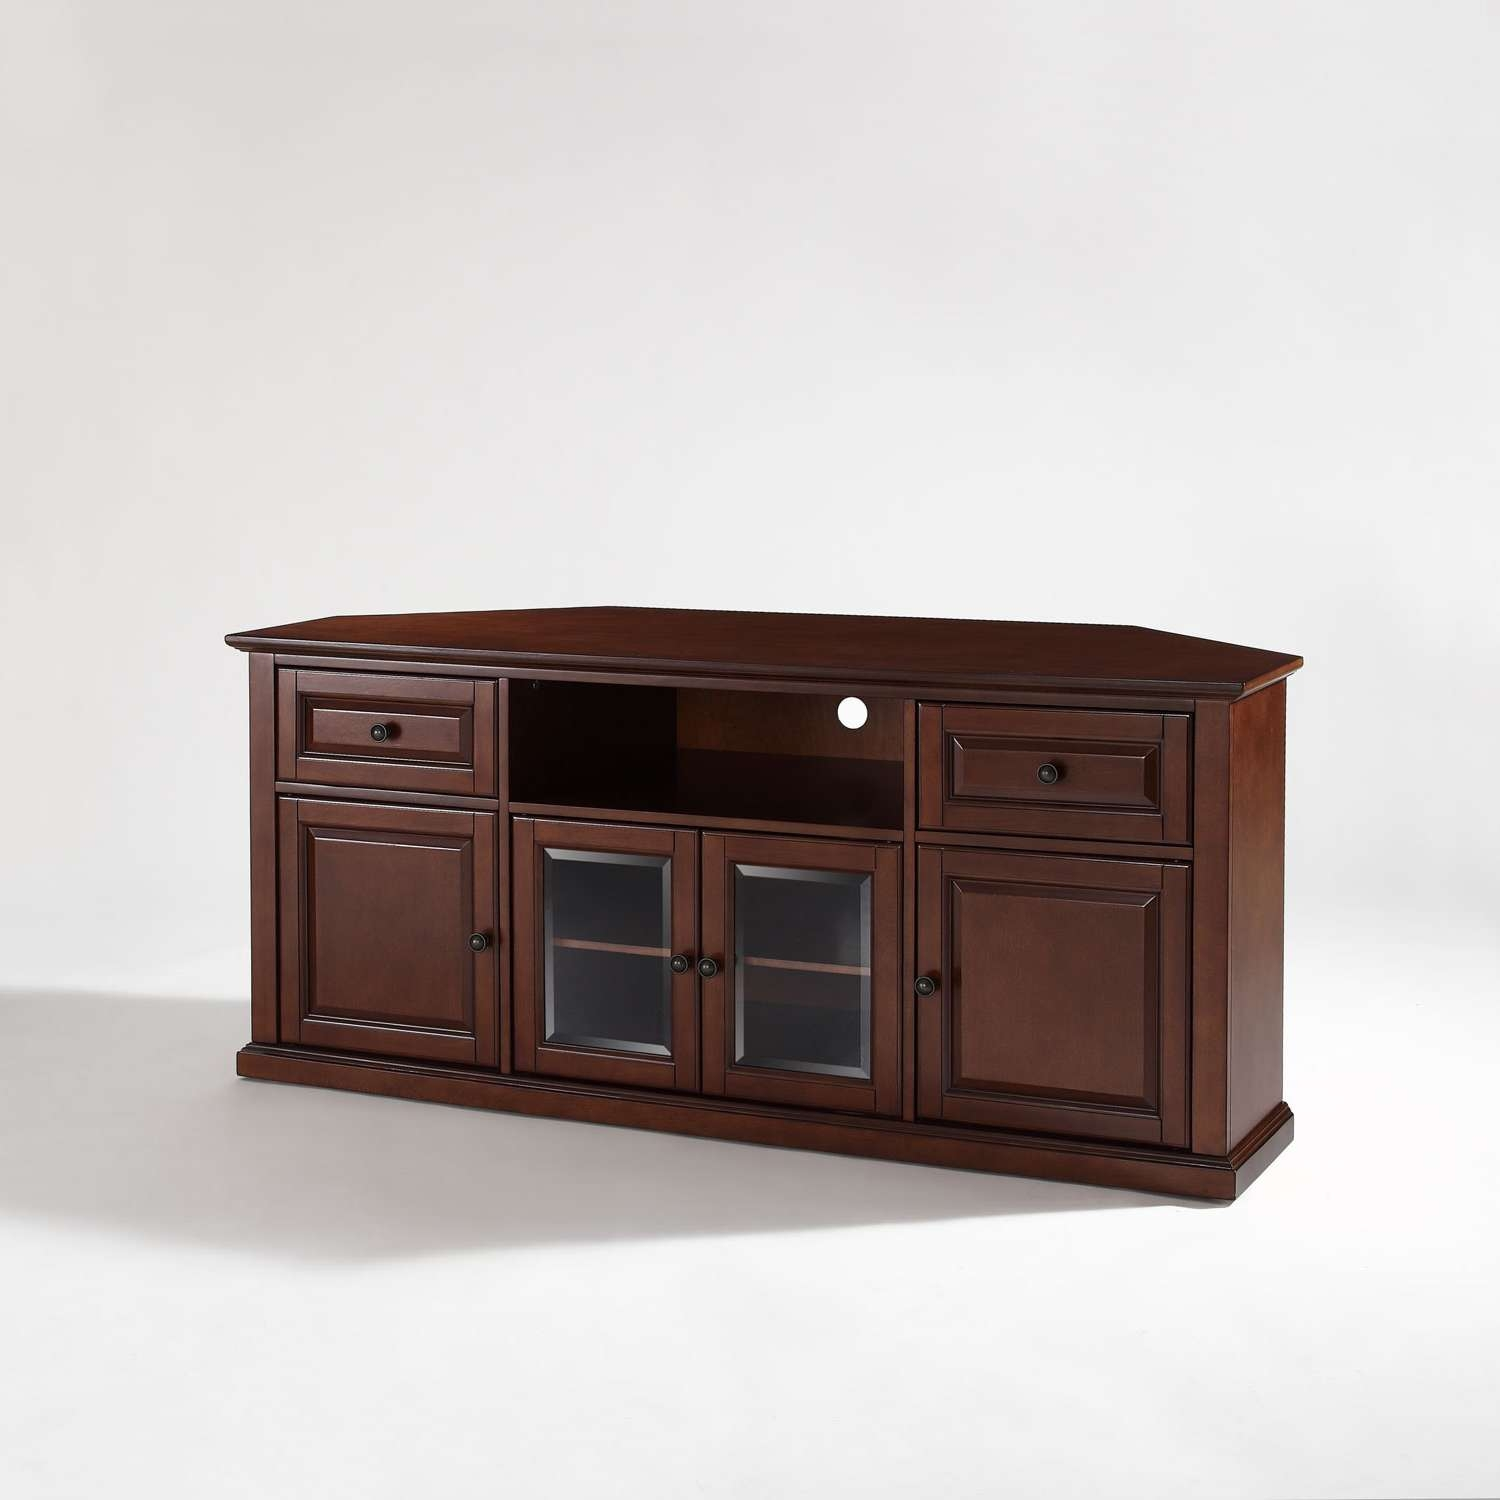 Tv Stand : Formidable Corner Tv Stand Image Inspirations Electric For Low Corner Tv Cabinets (View 16 of 20)